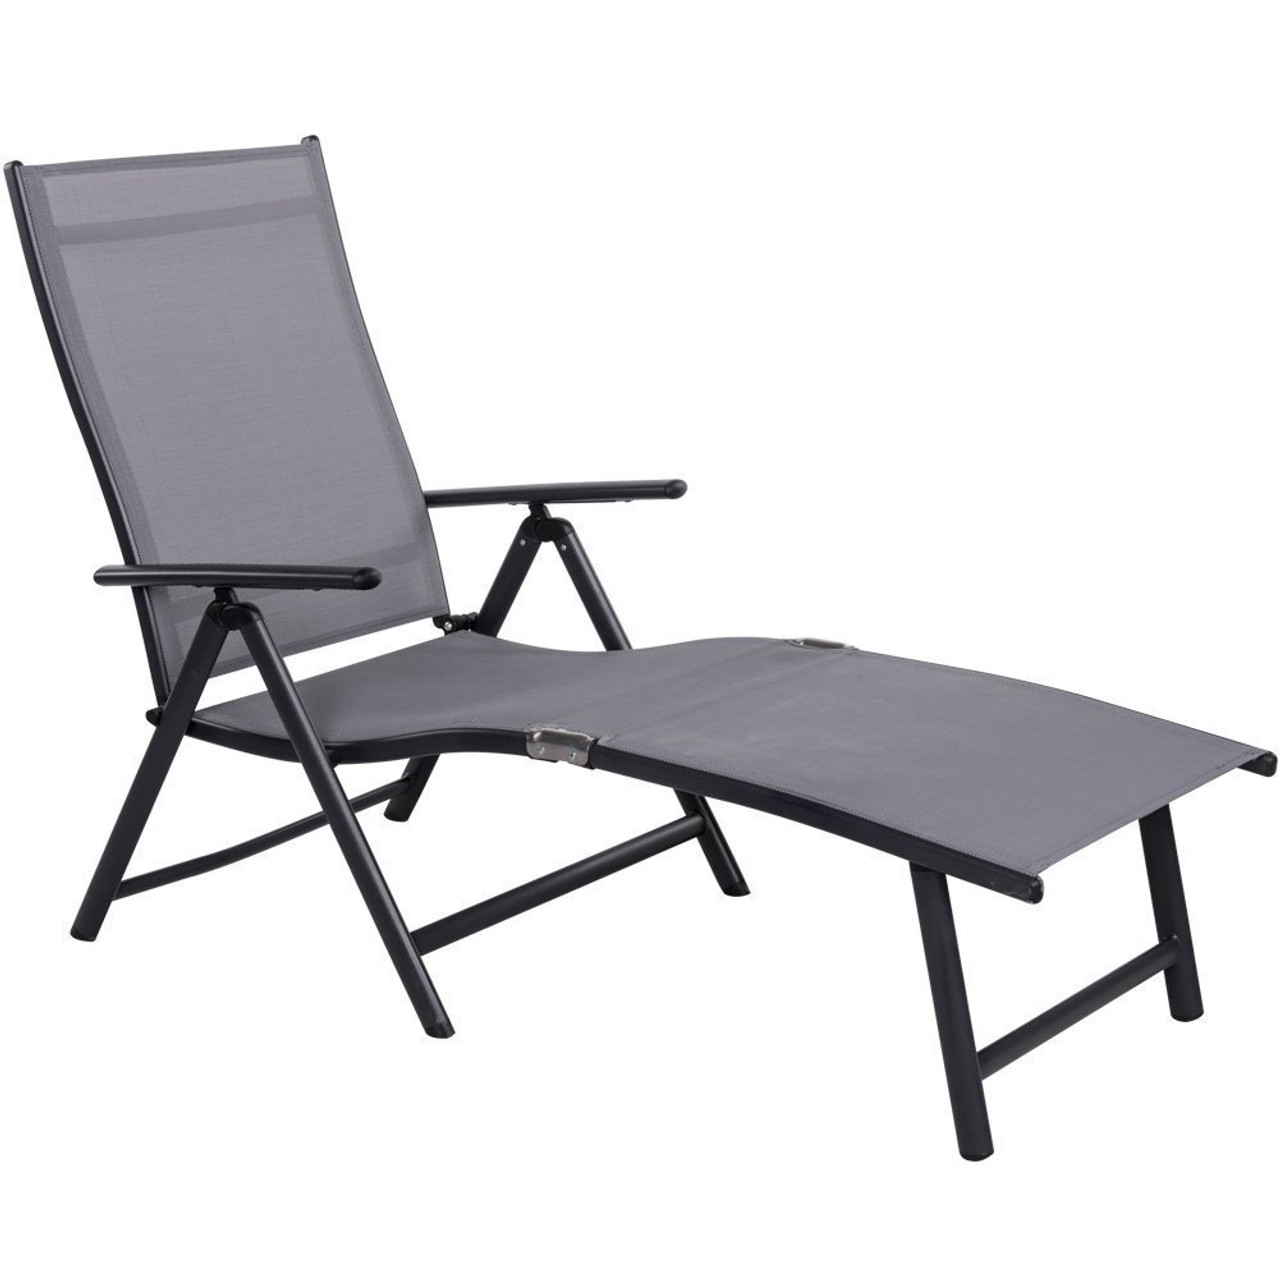 Superb Deluxe Aluminum Beach Yard Pool Folding Chaise Lounge Chair Recliner  Outdoor Patio